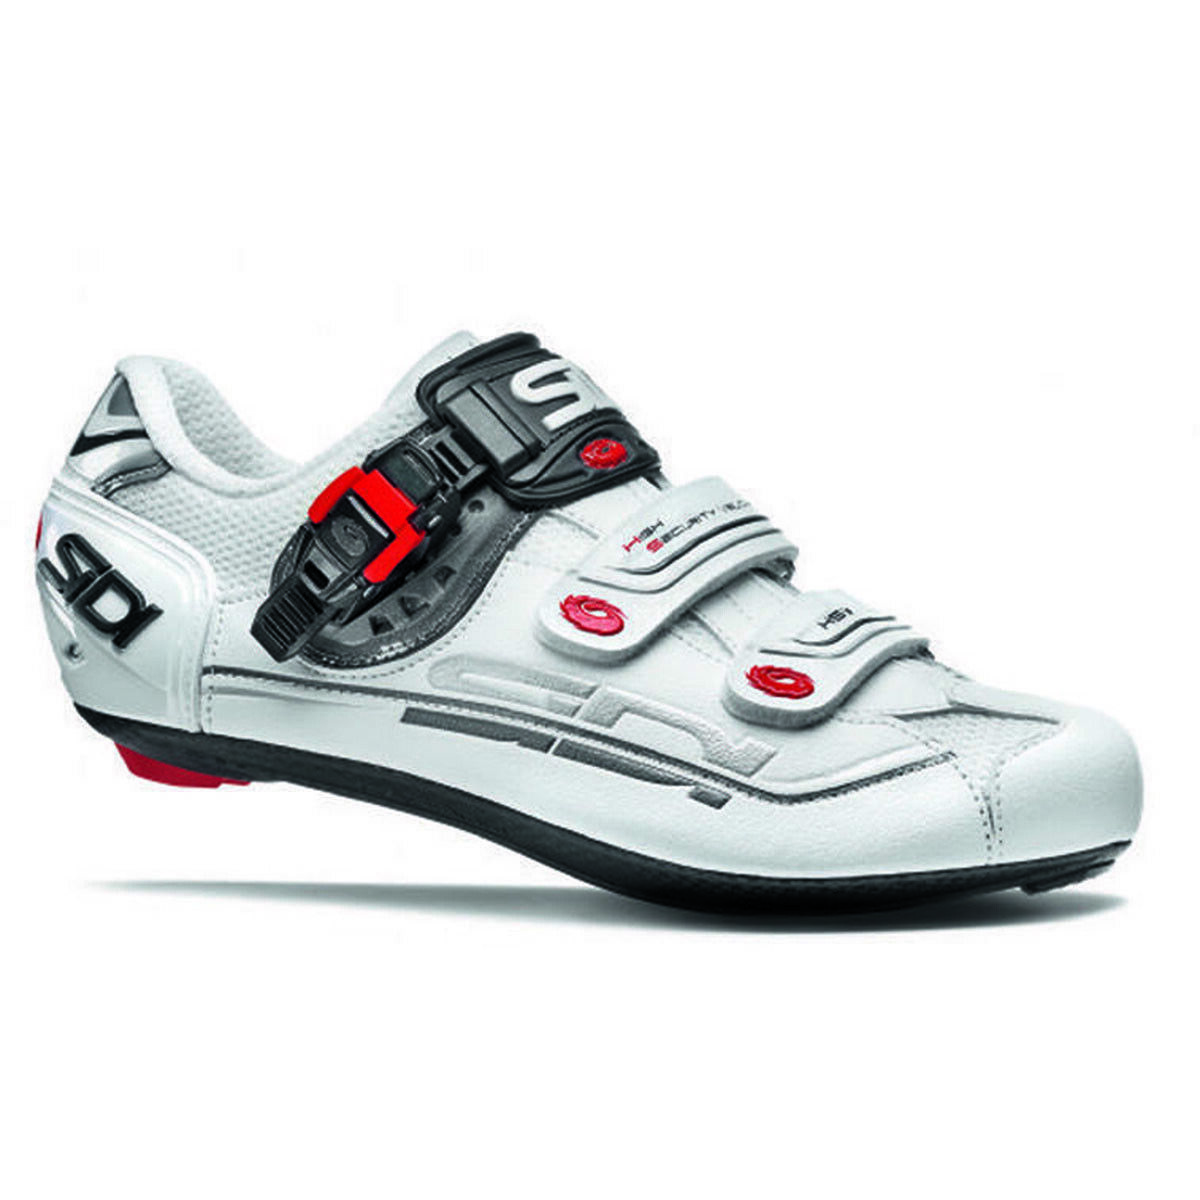 Sidi Genius 7 Carbon MEGA EE Width Road Cycling shoes White 44 EU   10 US